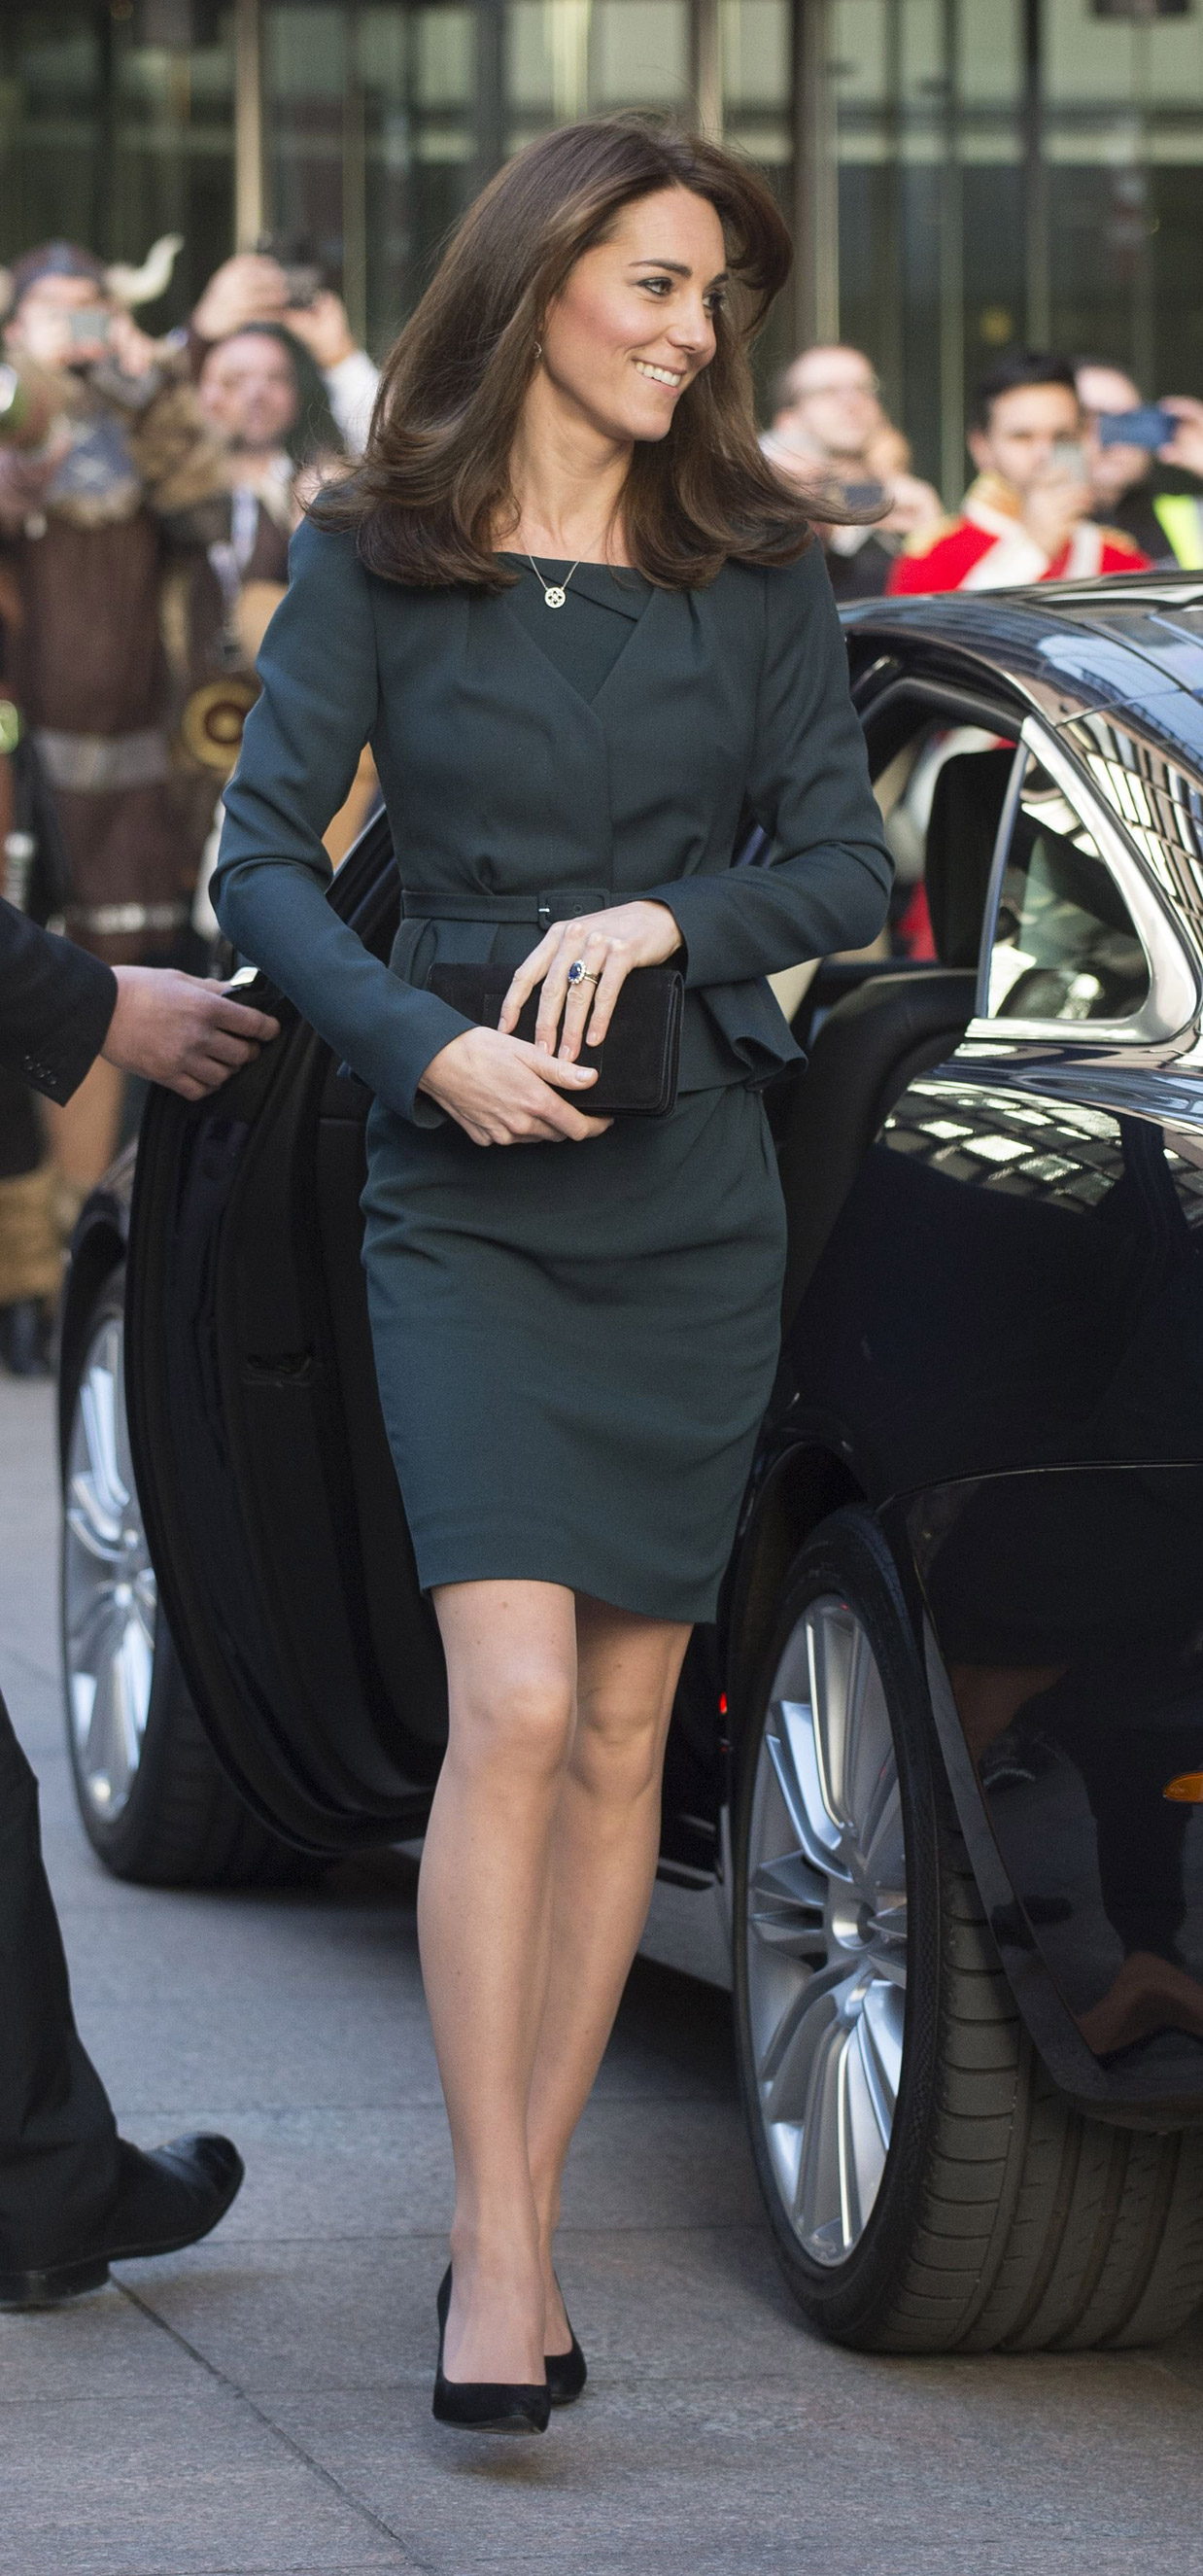 Catherine Duchess of Cambridge arrives at                                   ICAP's 23rd Annual Charity Day in London on Dec. 9, 2015.